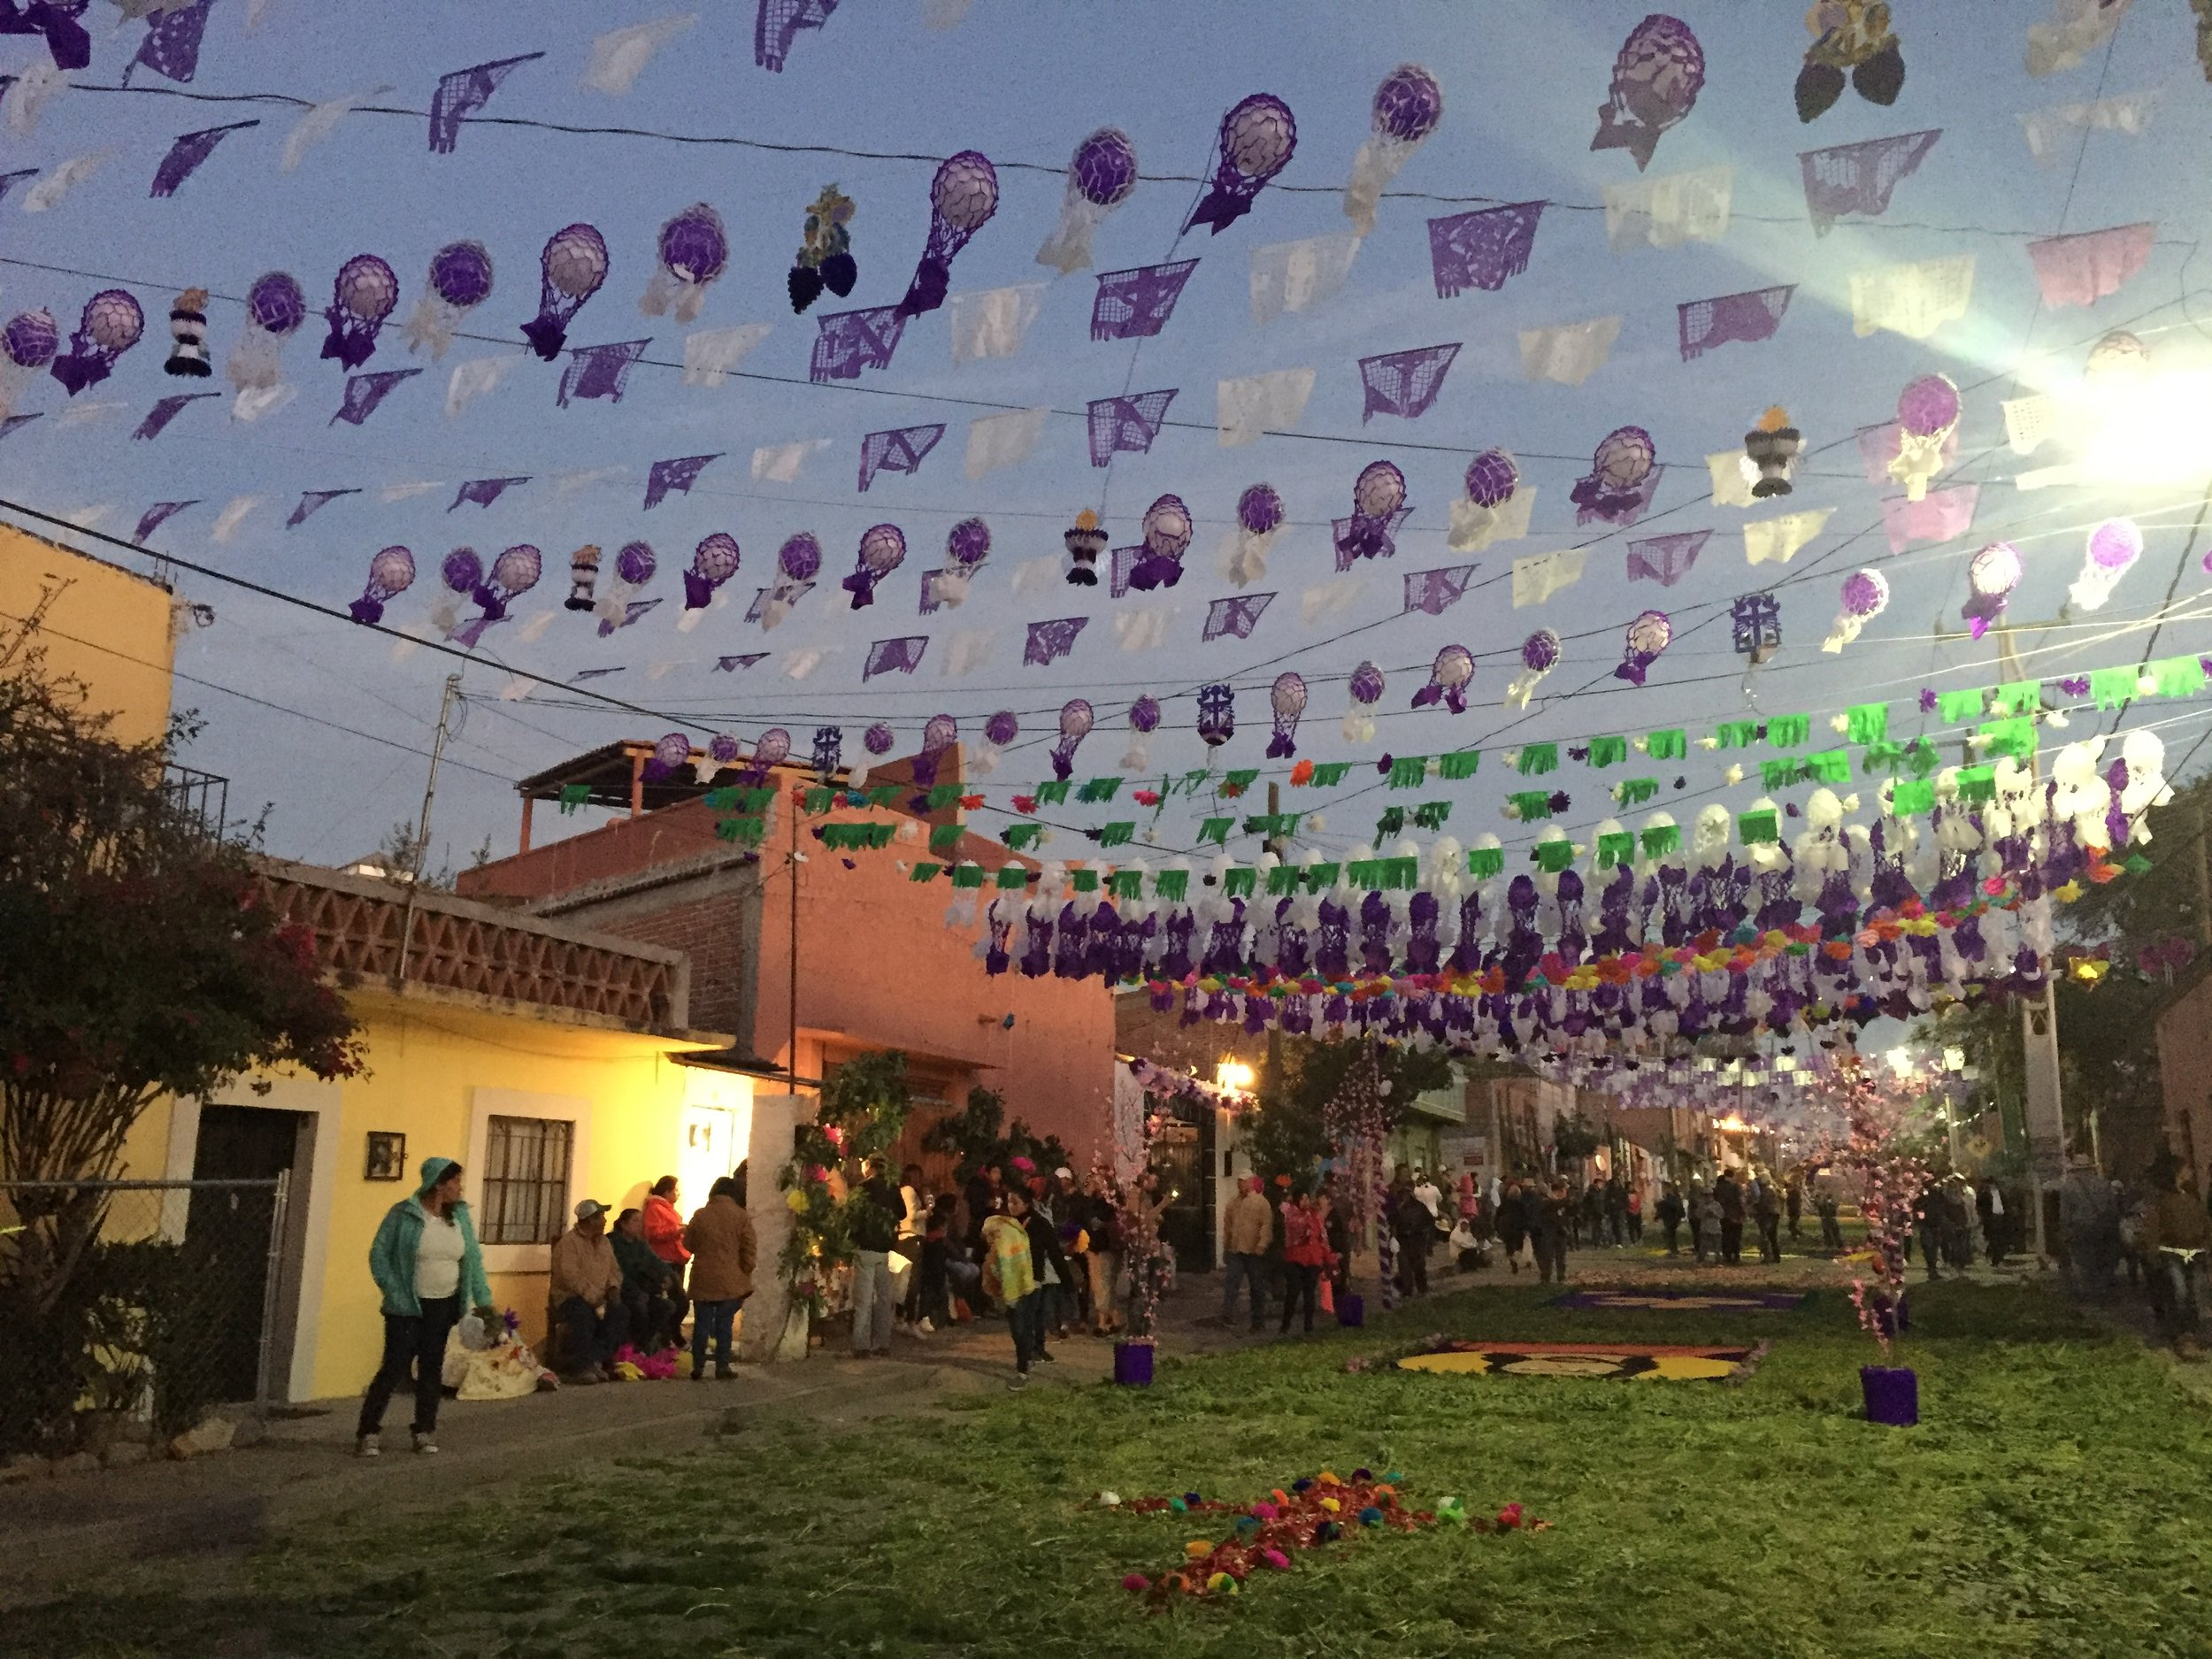 Awaiting the procession from atotonilco at dawn